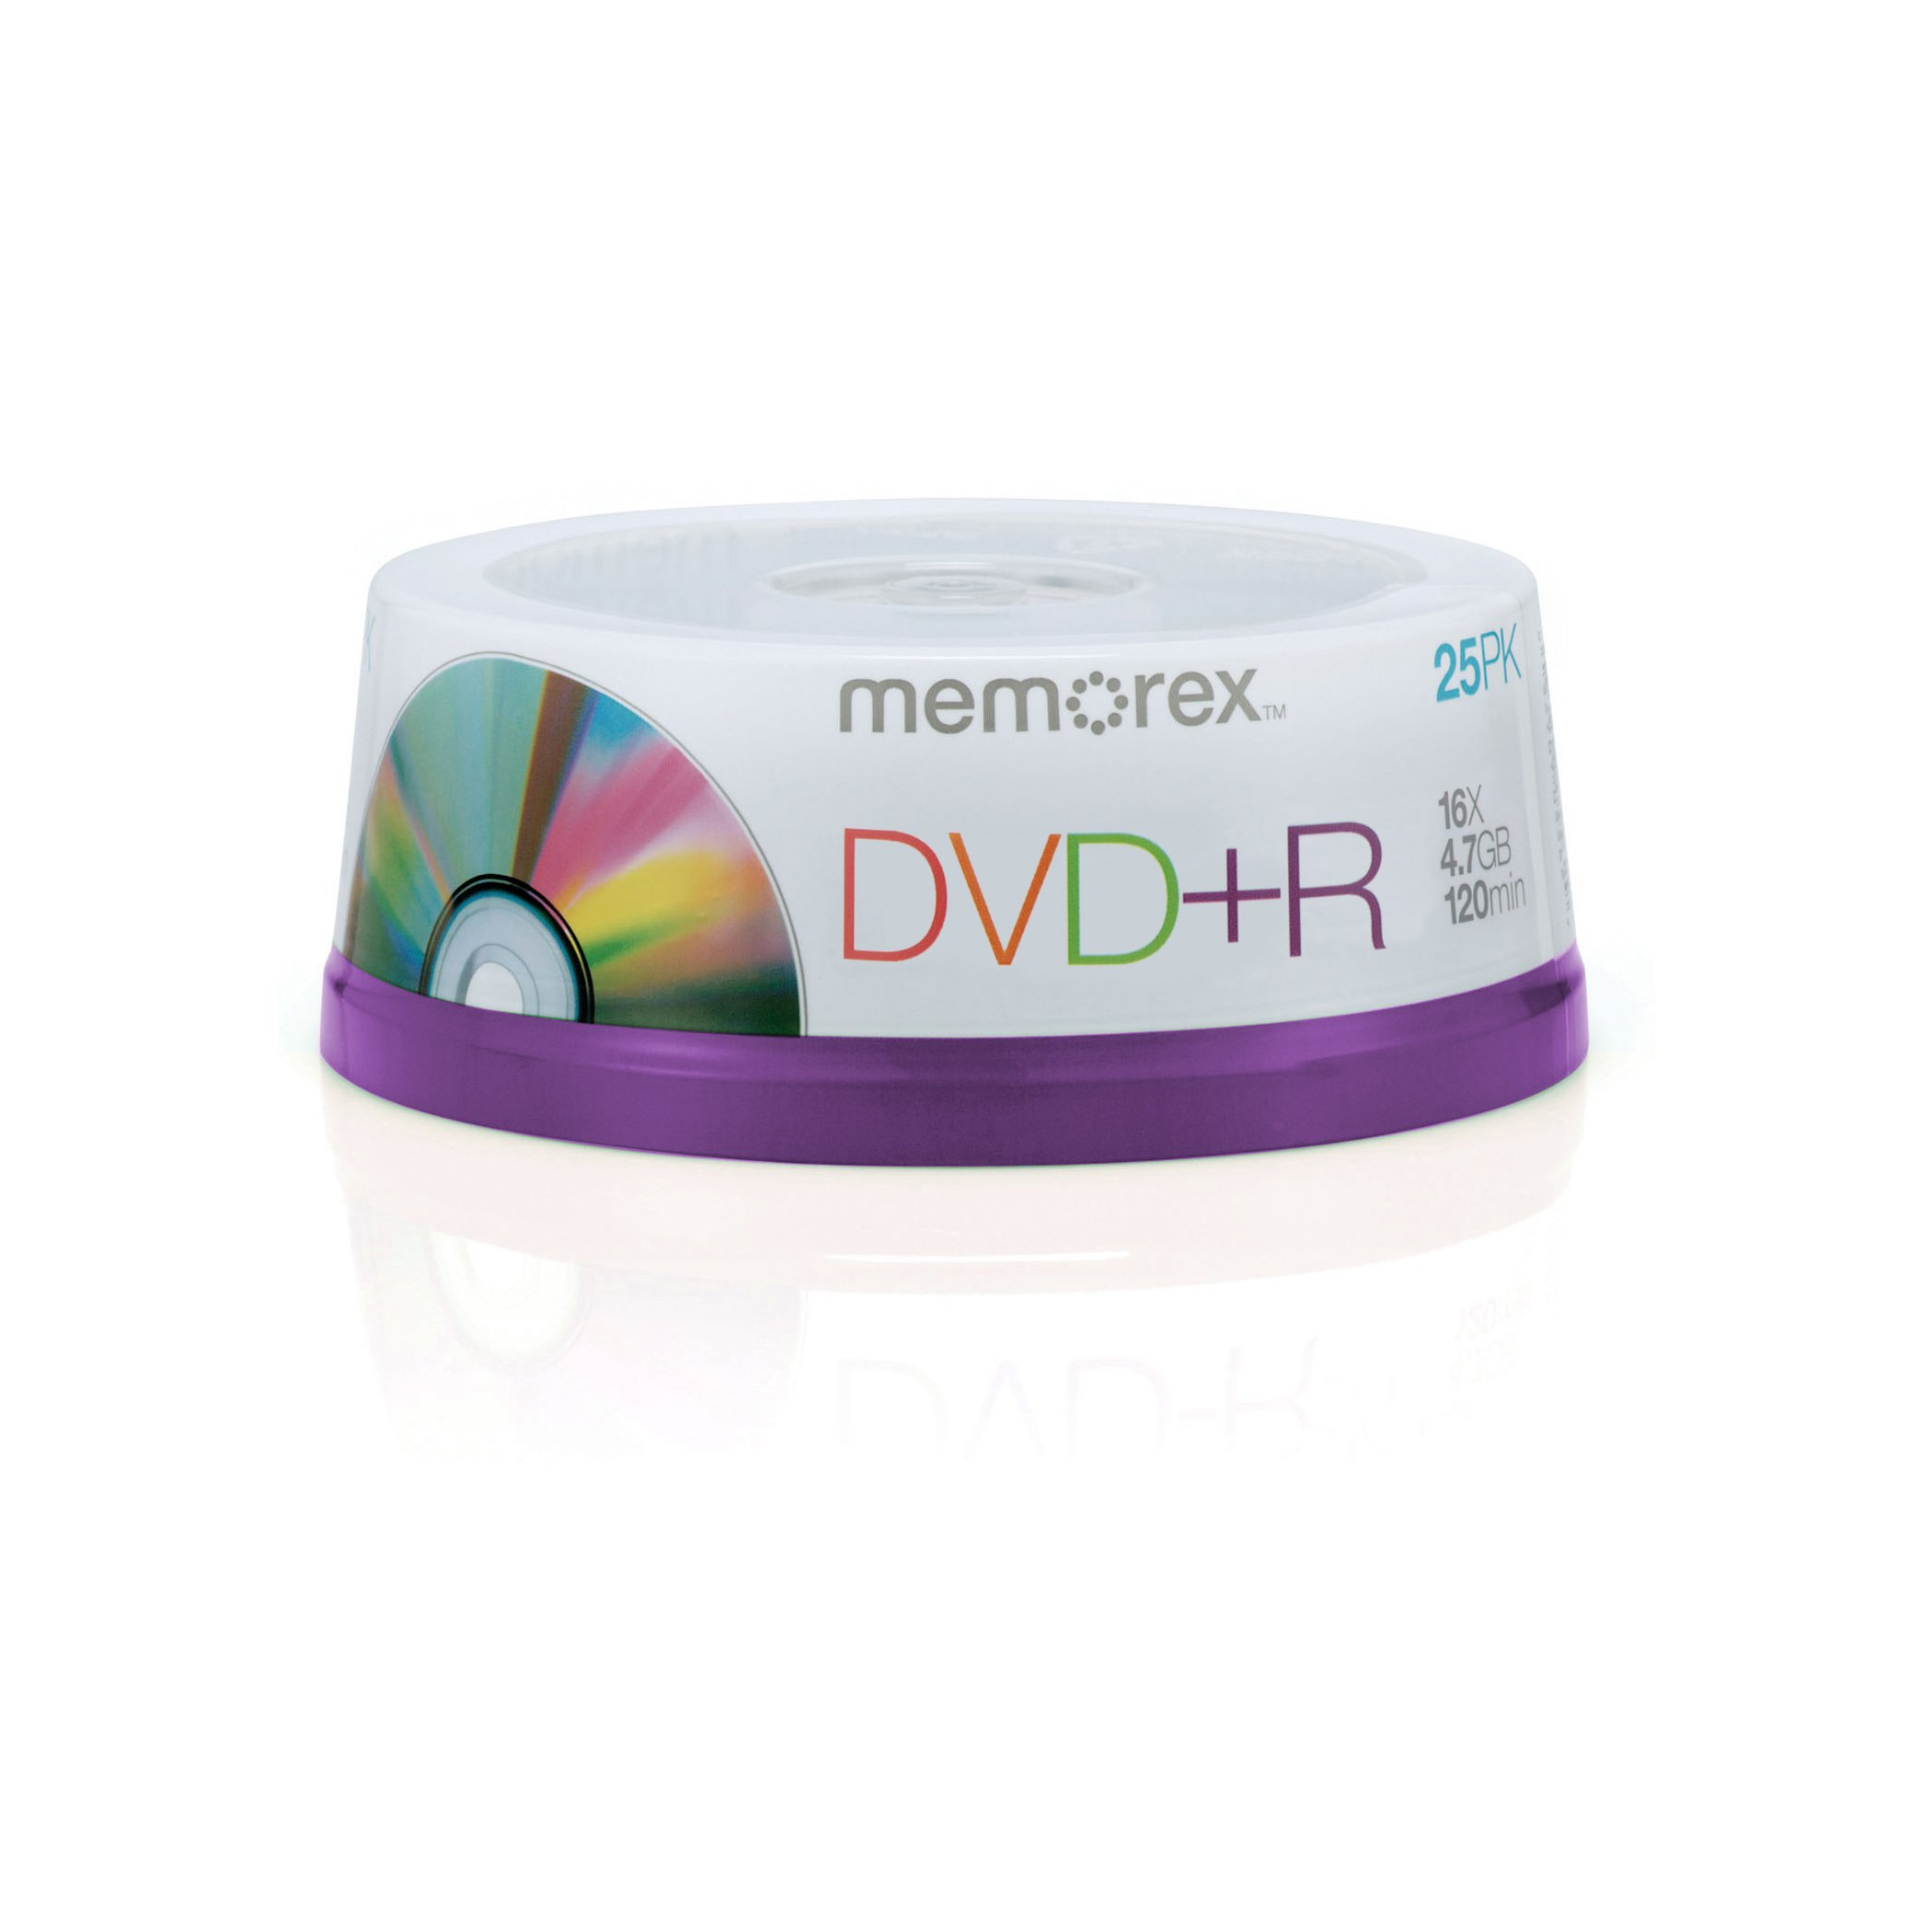 Memorex DVD+R 16x 4.7GB 25 Pack Spindle